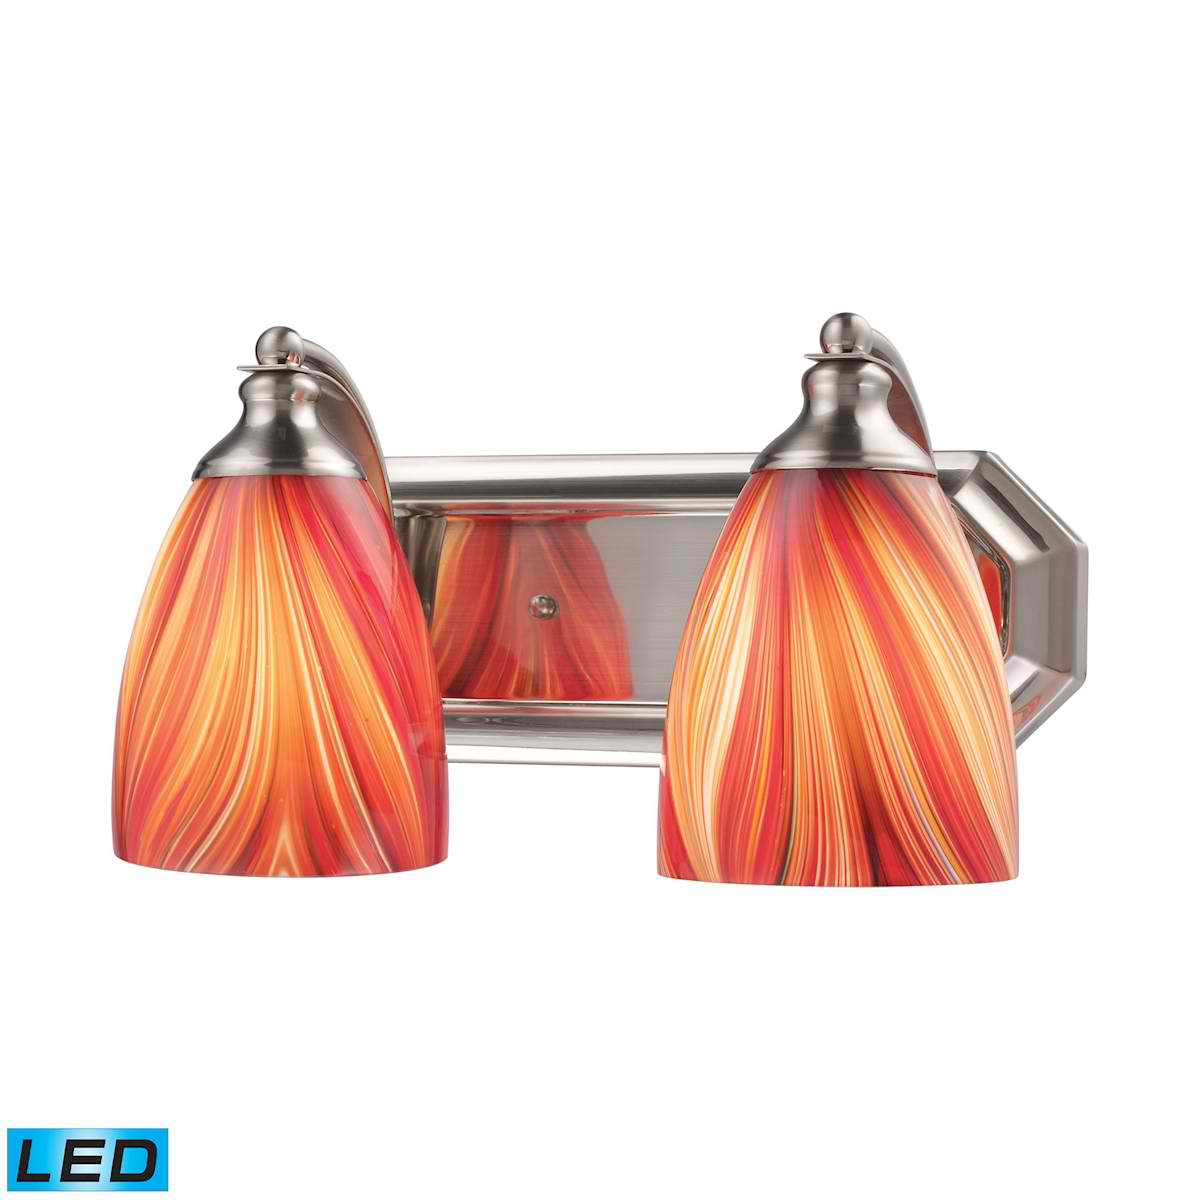 2 Light Vanity in Satin Nickel and Multi Glass - LED, 800 Lumens (1600 Lumens Total) with Full Scale